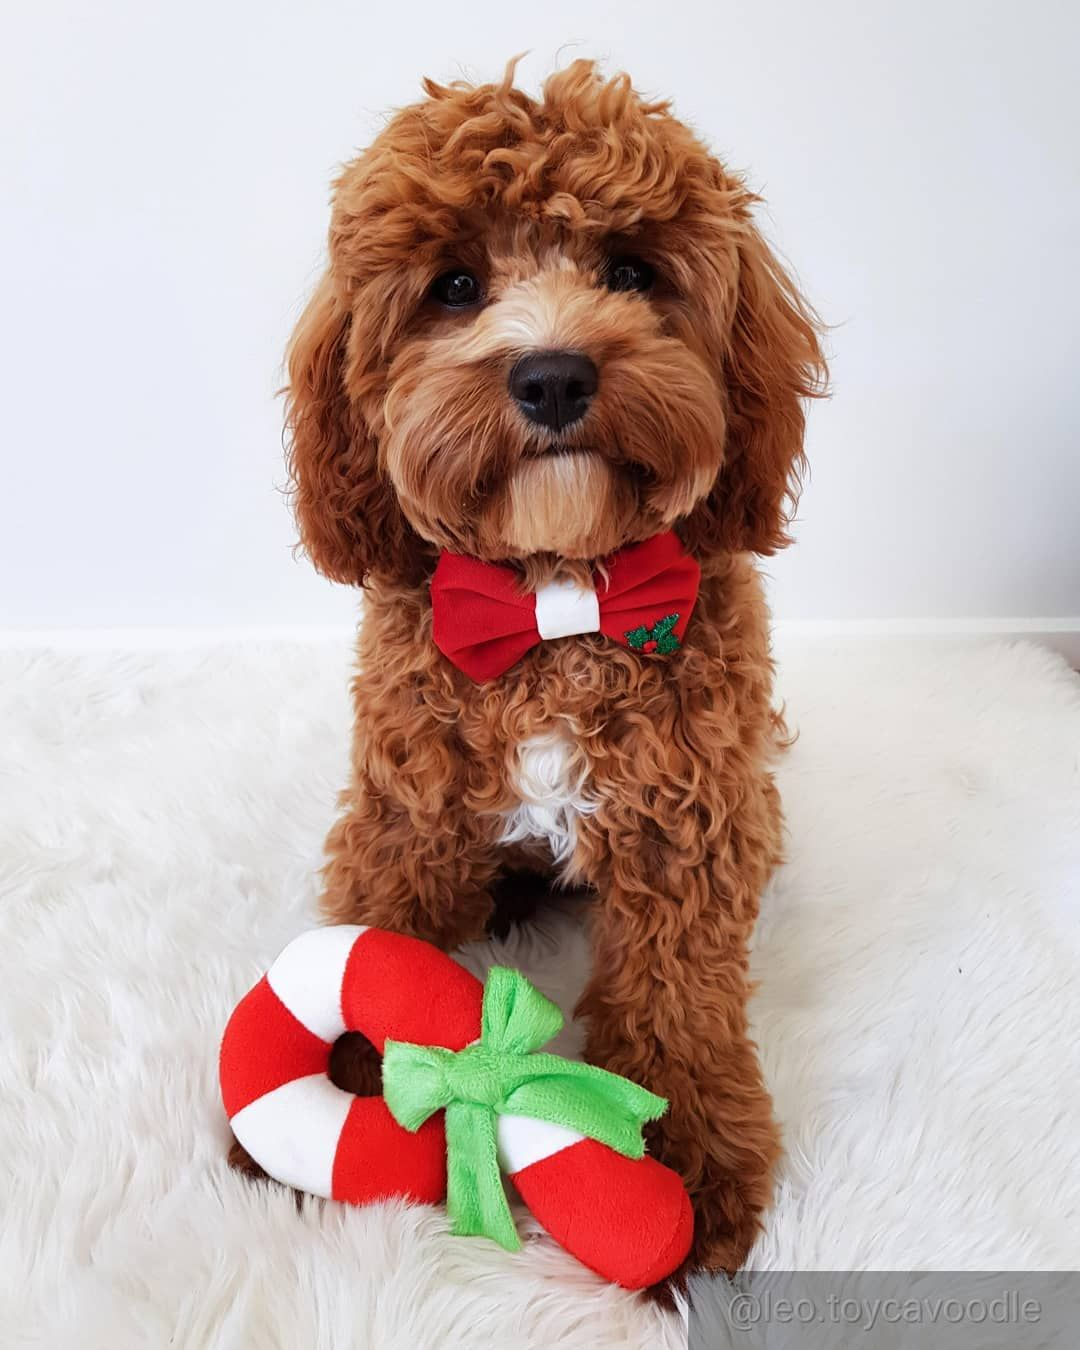 Everything You Need To Know About A Cavapoo Cavapoo Cavapoopuppies Cutepuppies Dogs Dogbeast King Charles Cavalier Spaniel Puppy Cavapoo Puppies Cavalier King Charles